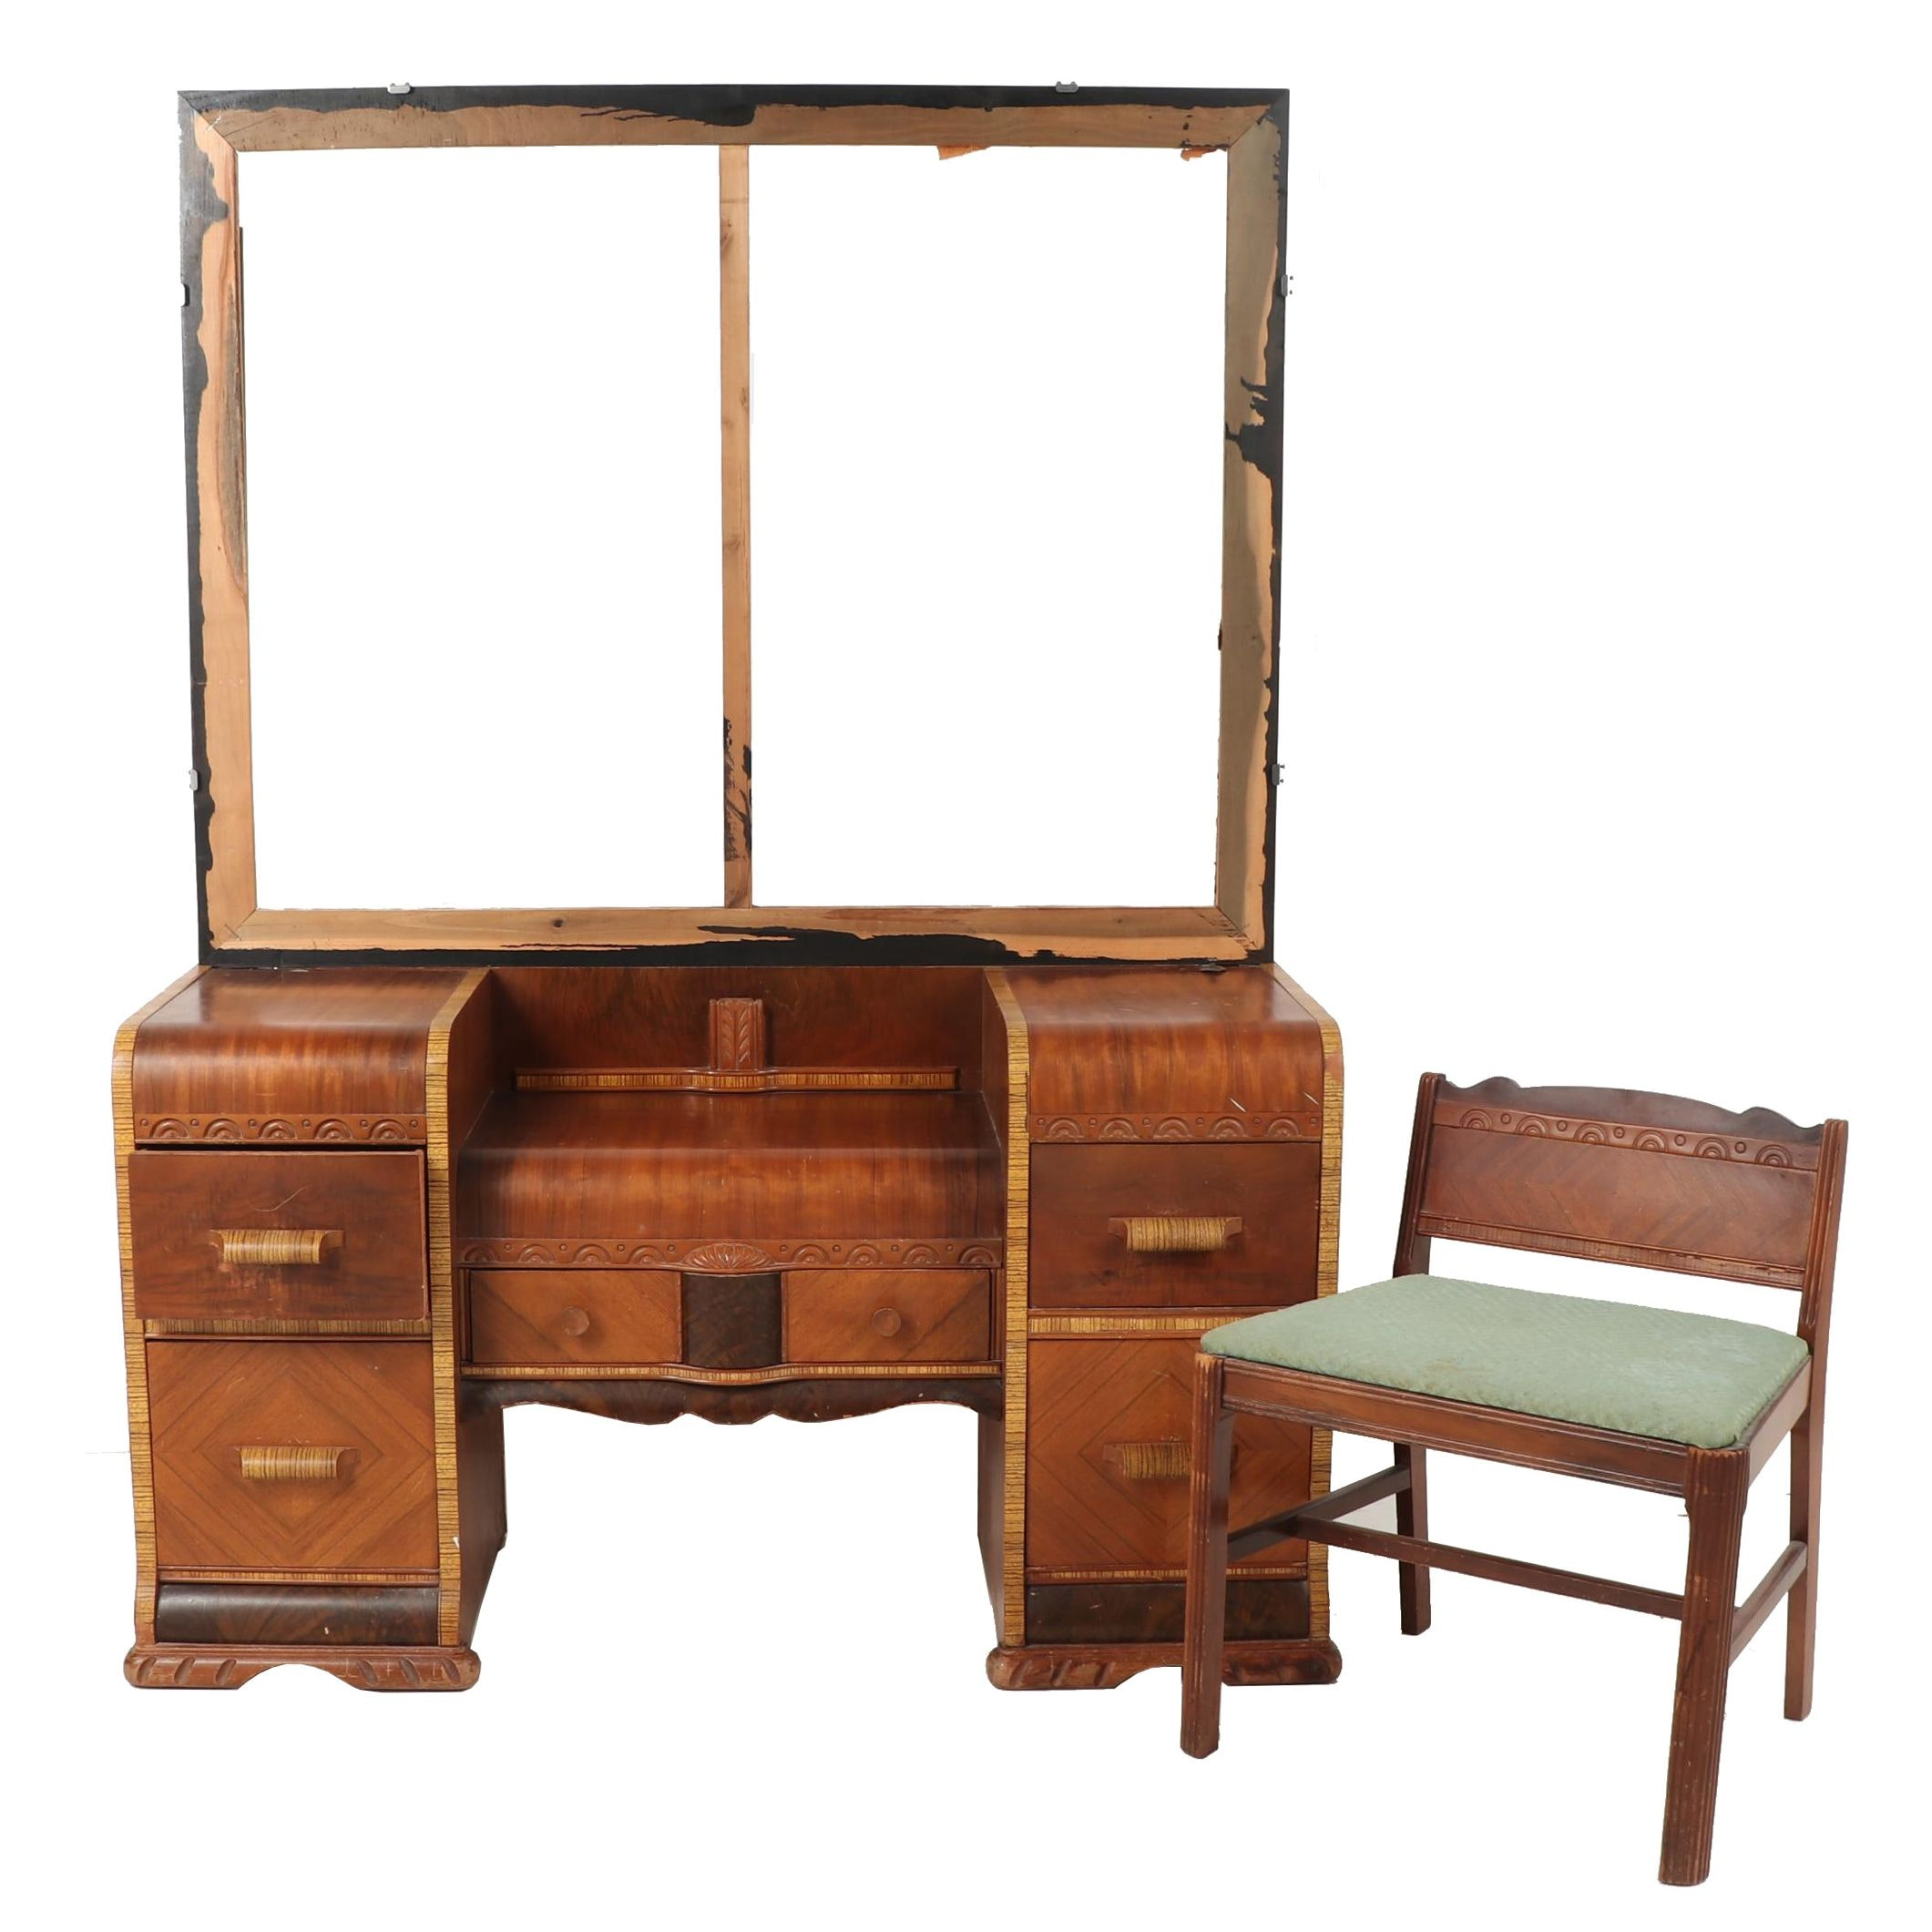 Art Deco Vanity with Bench Seat, Early 20th Century